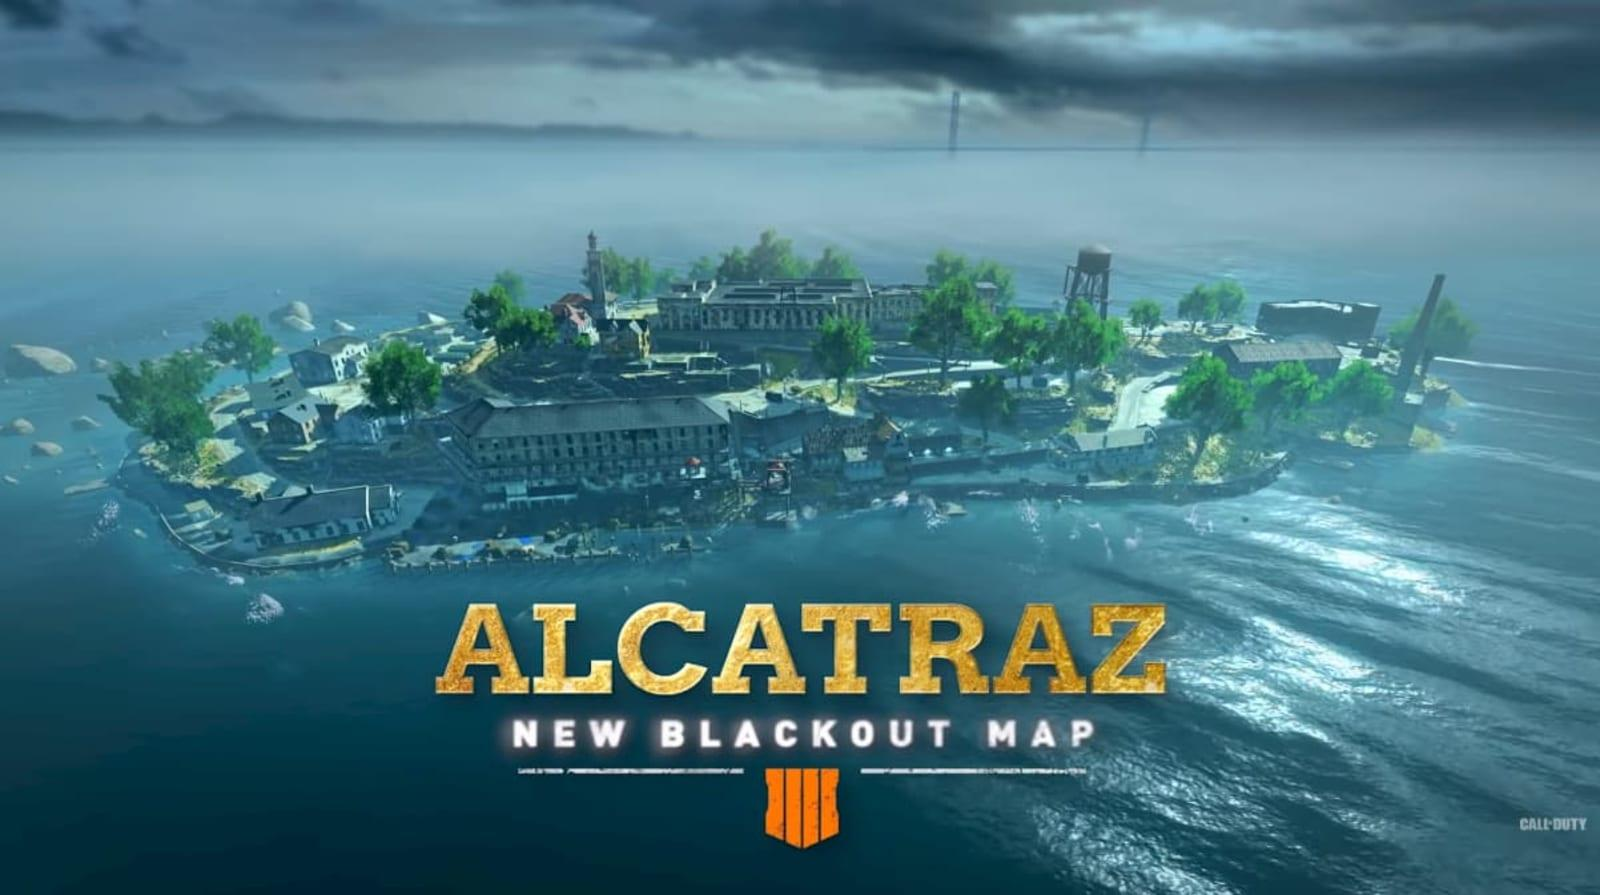 Call Of Duty Black Ops 4 Gets A Second Battle Royale Map